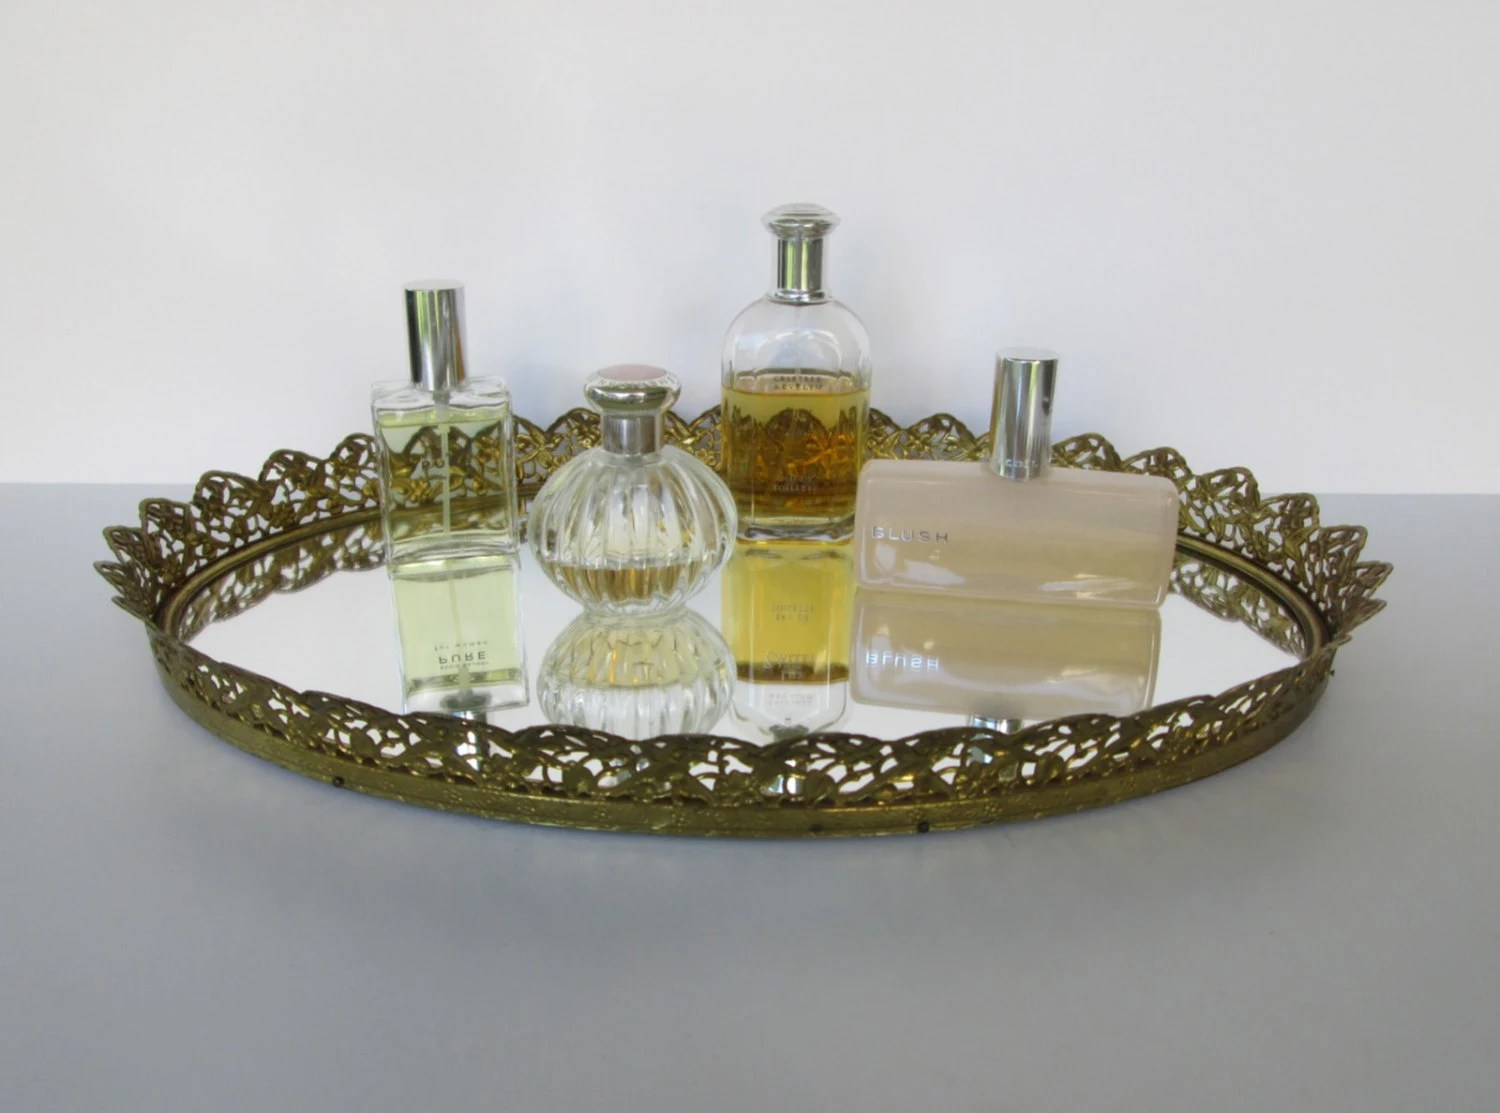 Large Mirrored Gold Rimmed Vanity Tray